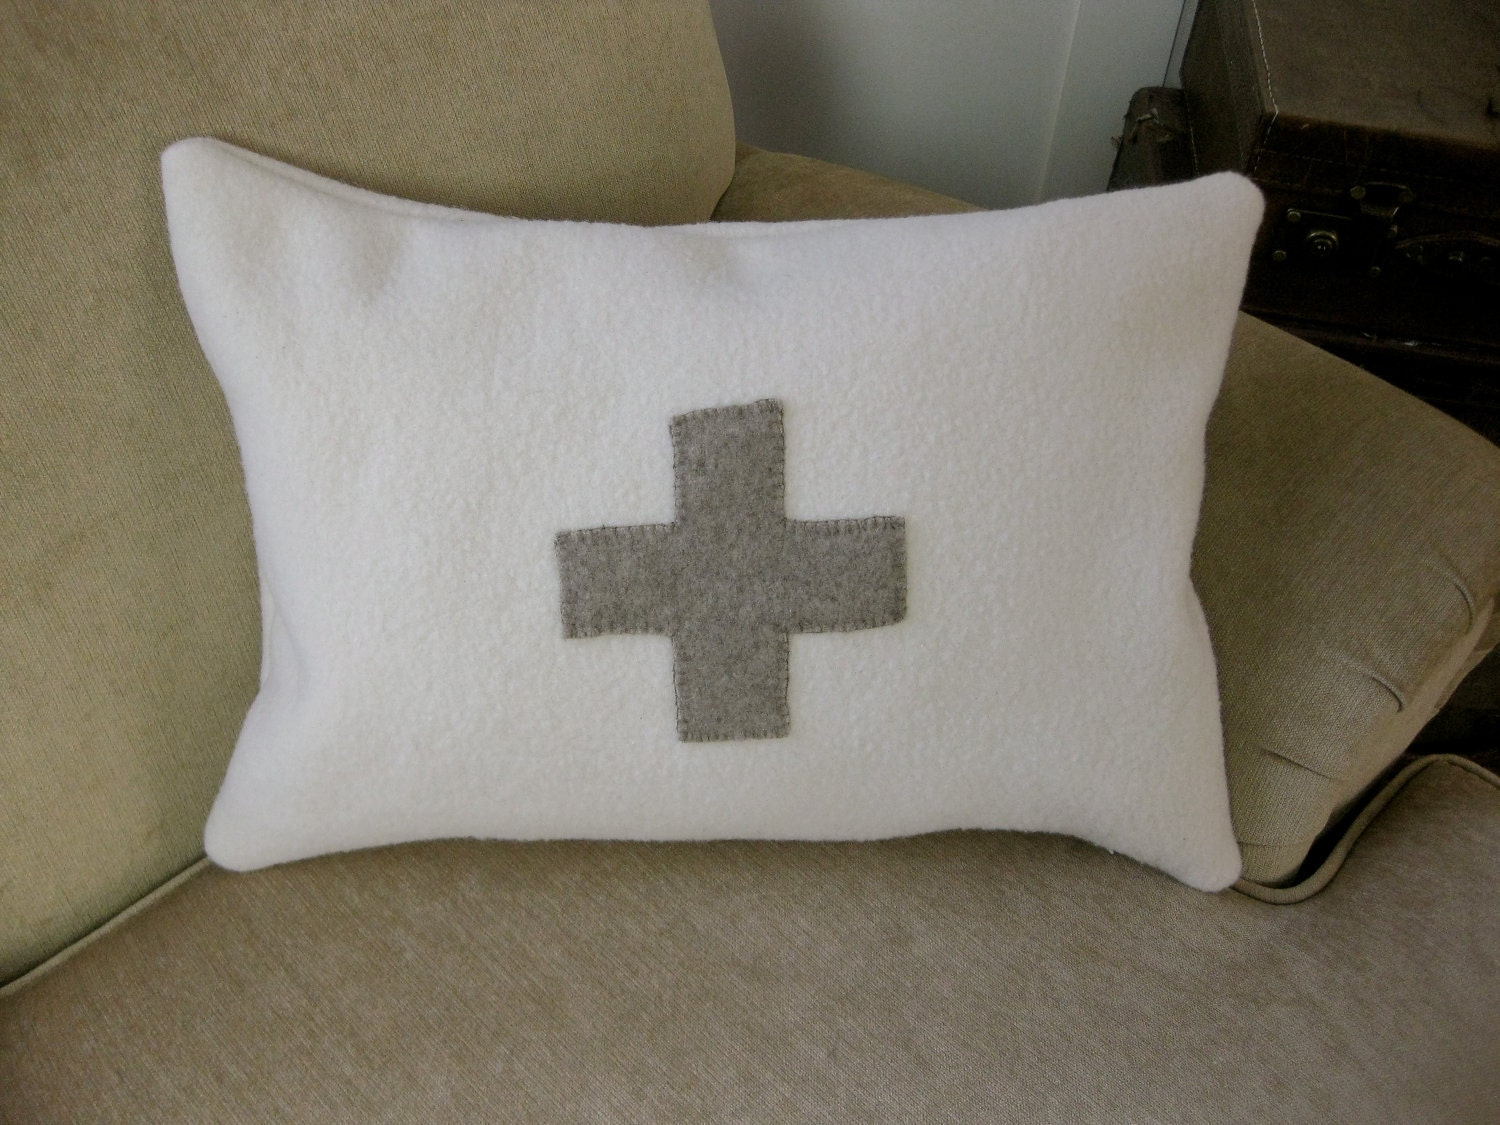 Beautiful Swiss Cross Pillow - Made from a Recycle Wool Sweater and a US Navy Blanket